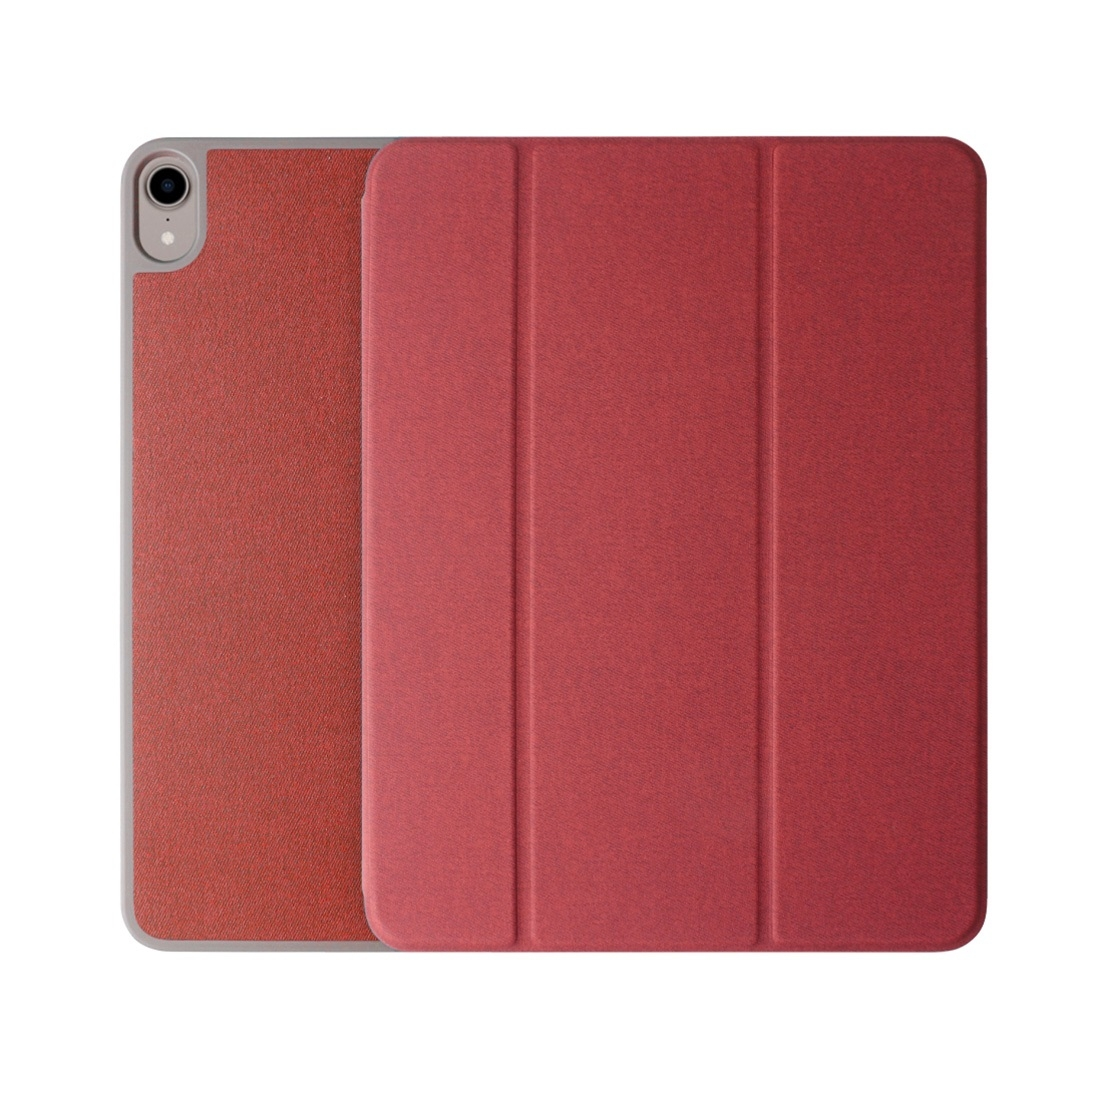 PU/Leather iPad Pro 11 Case (2018), w/ 3-Fold Holder, Pen Holder, Auto Sleep (Red)